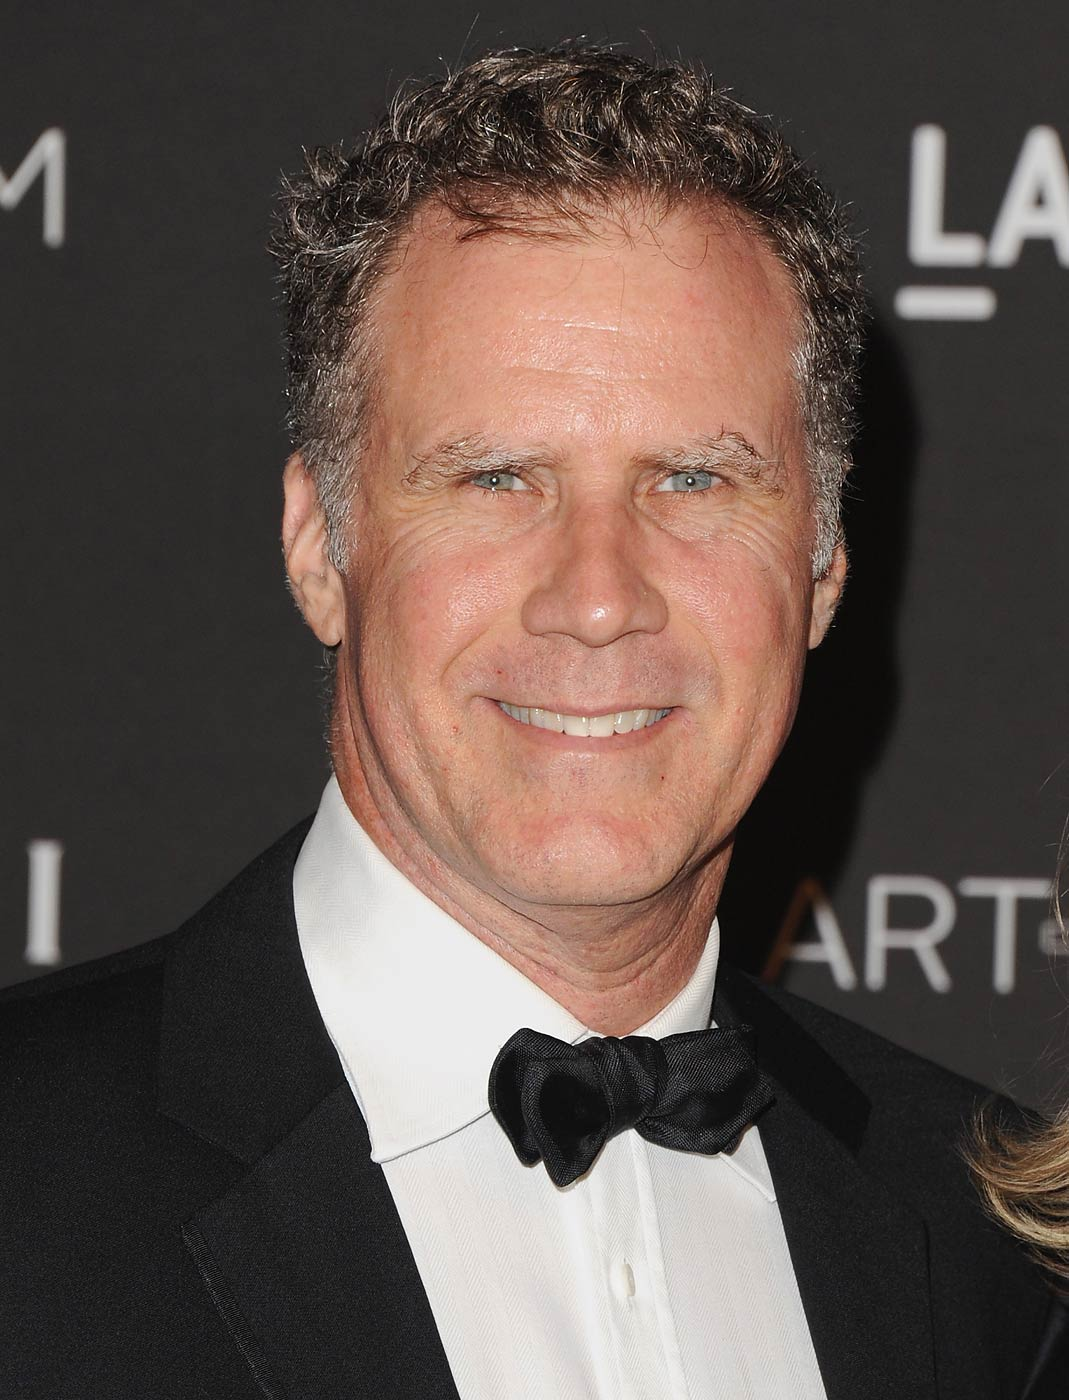 Will Ferrell arrives at the 2014 LACMA Art + Film Gala on November 1, 2014 in Los Angeles, Ca.